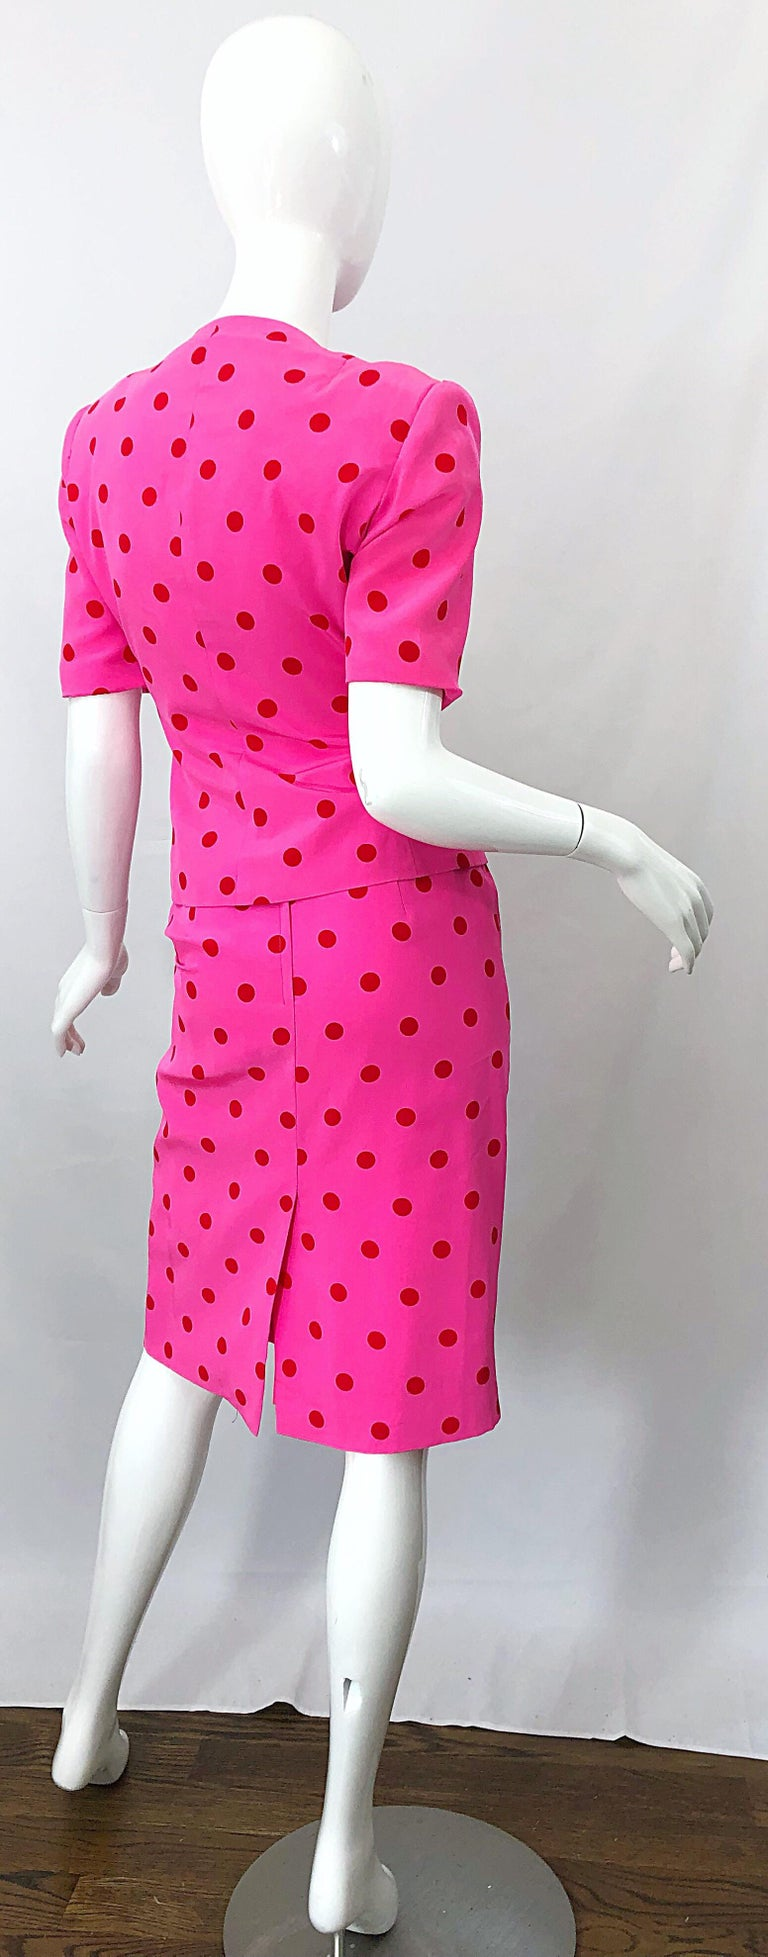 1990s David Hayes for Saks 5th Avenue Hot Pink Red Polka Dot Vintage Skirt Suit In Excellent Condition For Sale In Chicago, IL